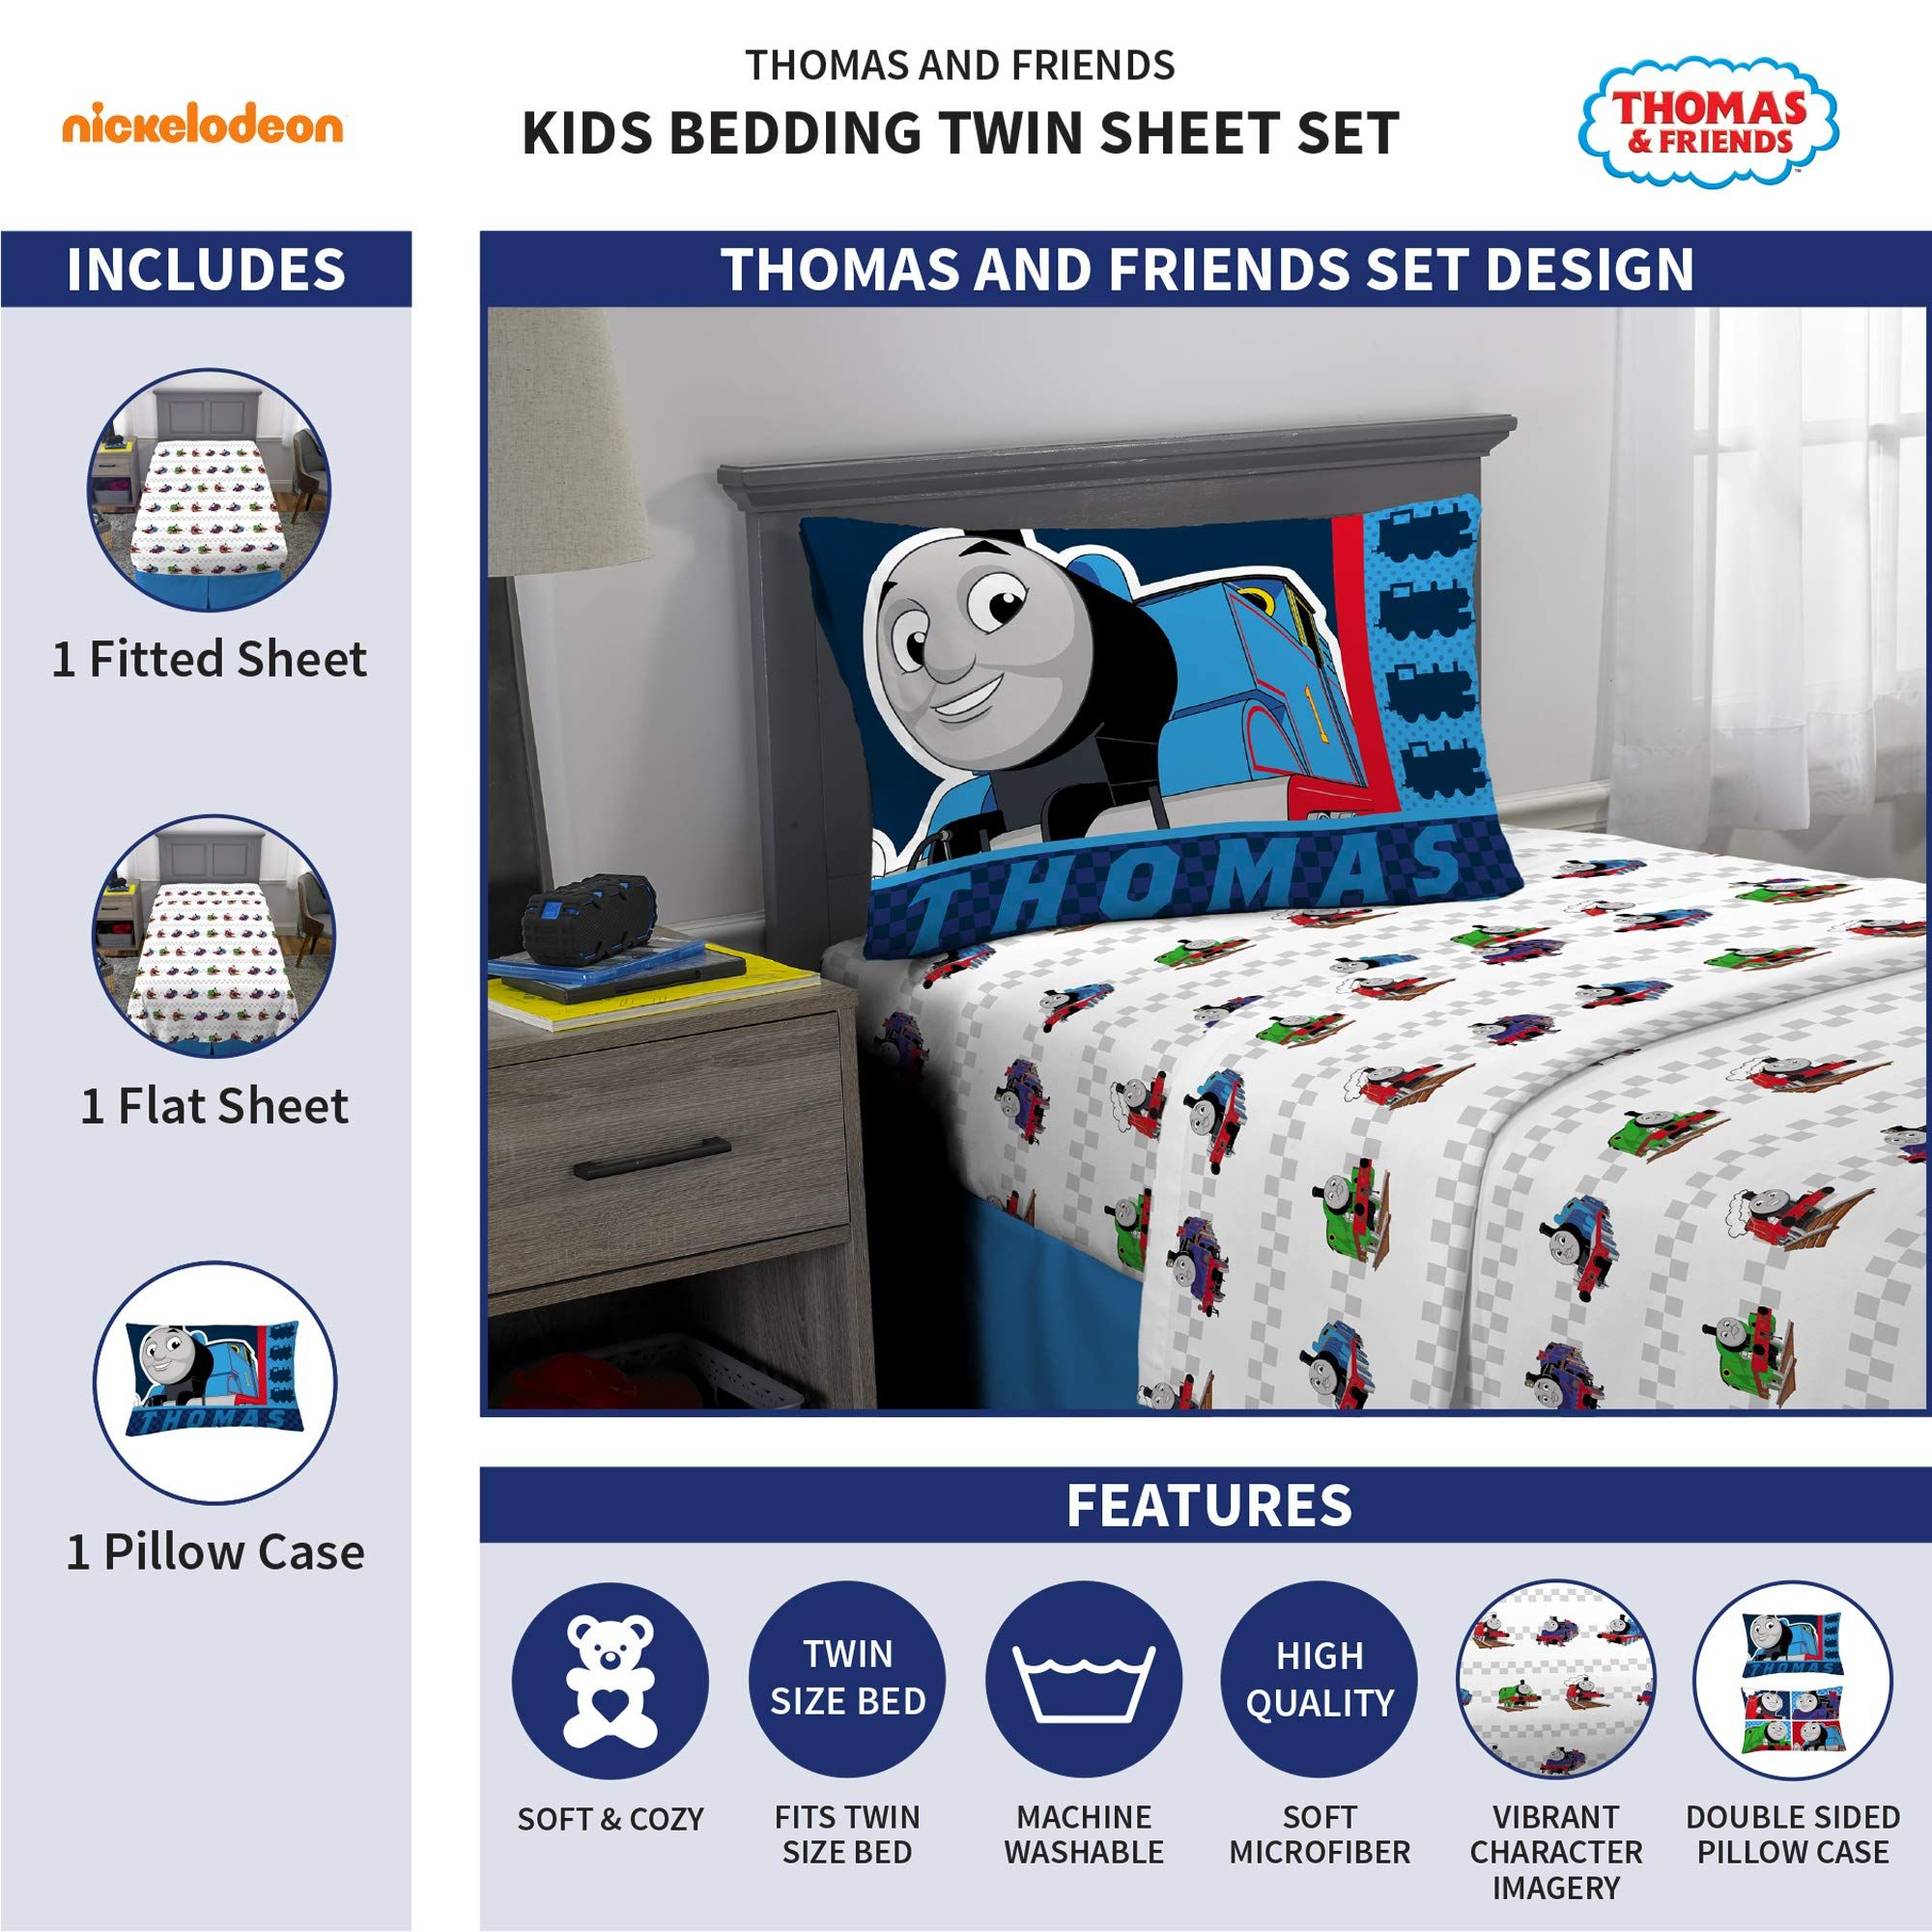 Thomas And Friends Kids Bedding Soft Microfiber Sheet Set 3 Piece